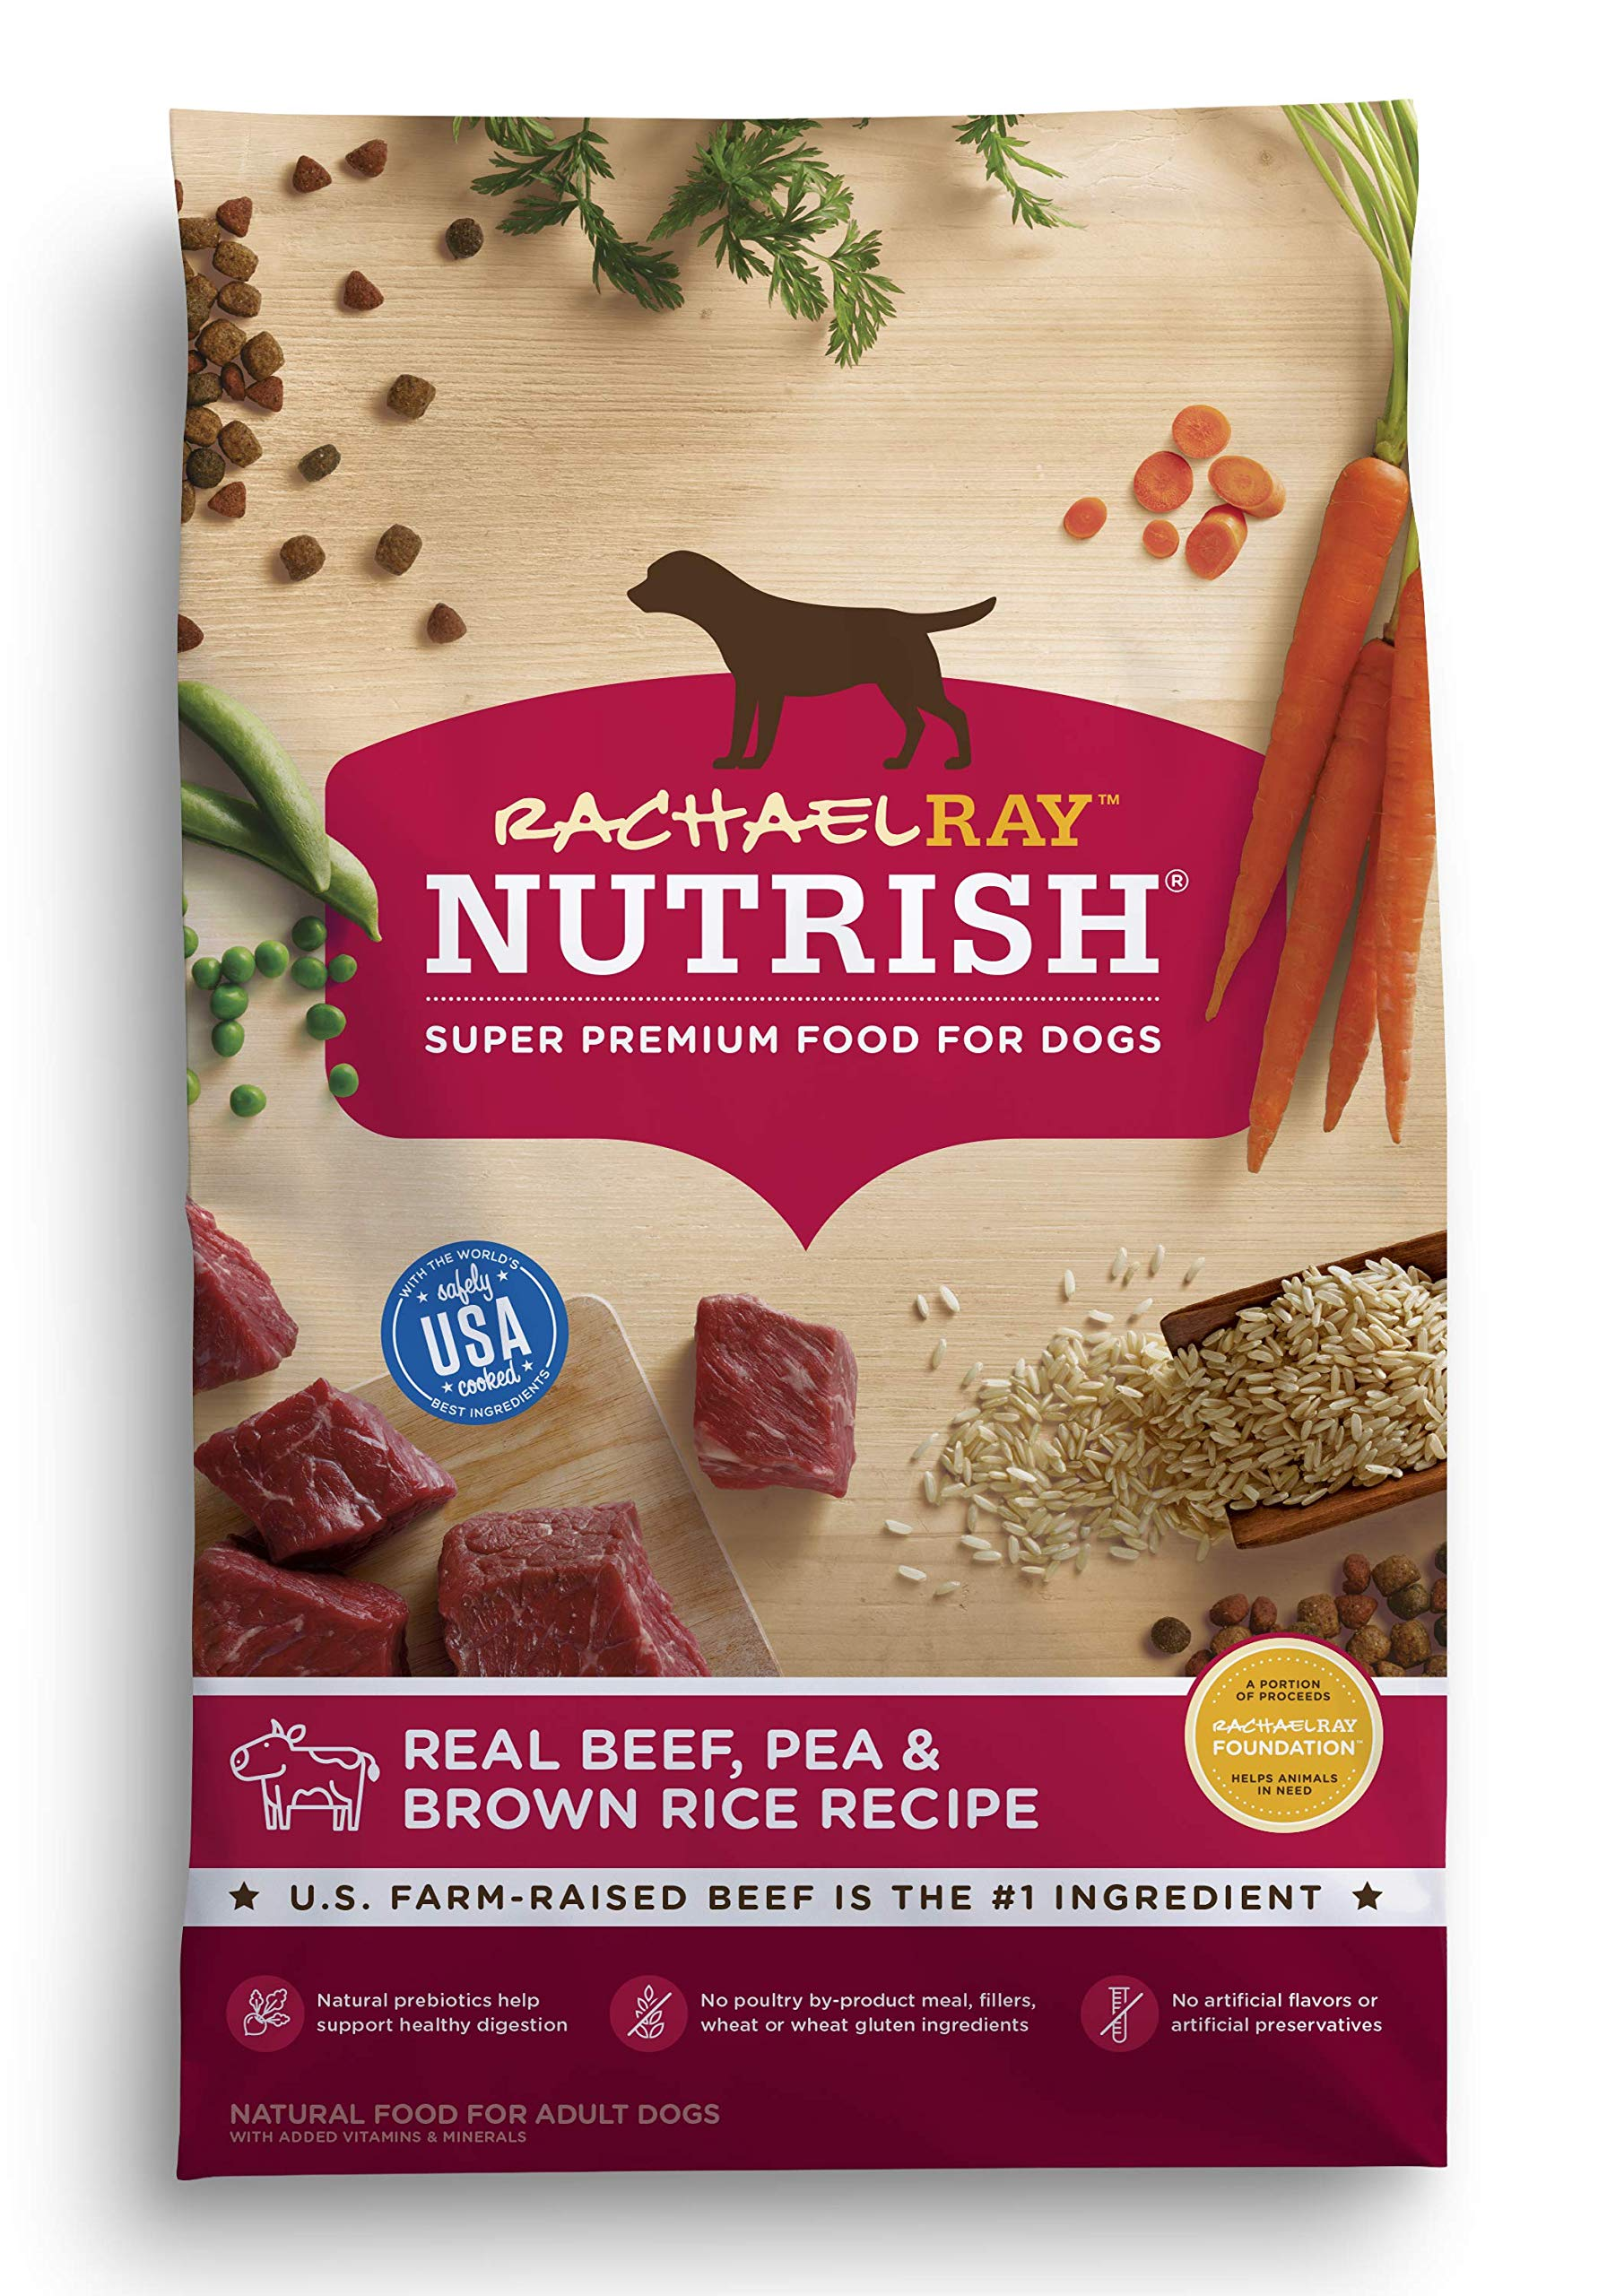 Rachael Ray Nutrish Real Beef, Pea & Brown Rice Recipe Dry Dog Food, 40 Pounds by Rachael Ray Nutrish